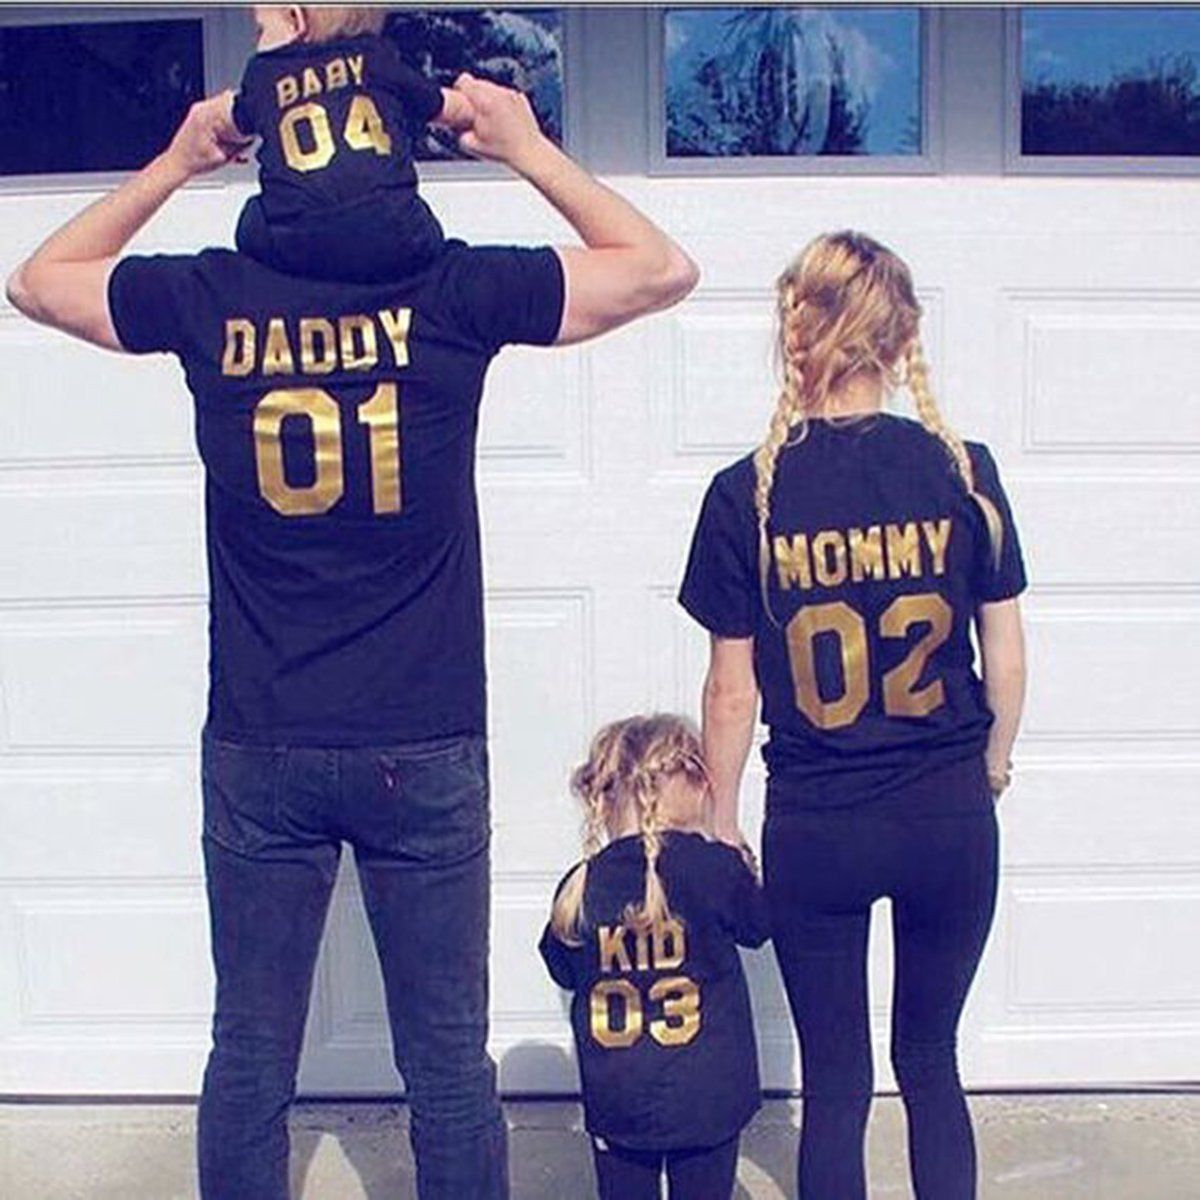 72340e033 Couple T-Shirt Daddy Mommy Baby Kid Love Matching Shirts Family Clothes Tee  Tops | eBay